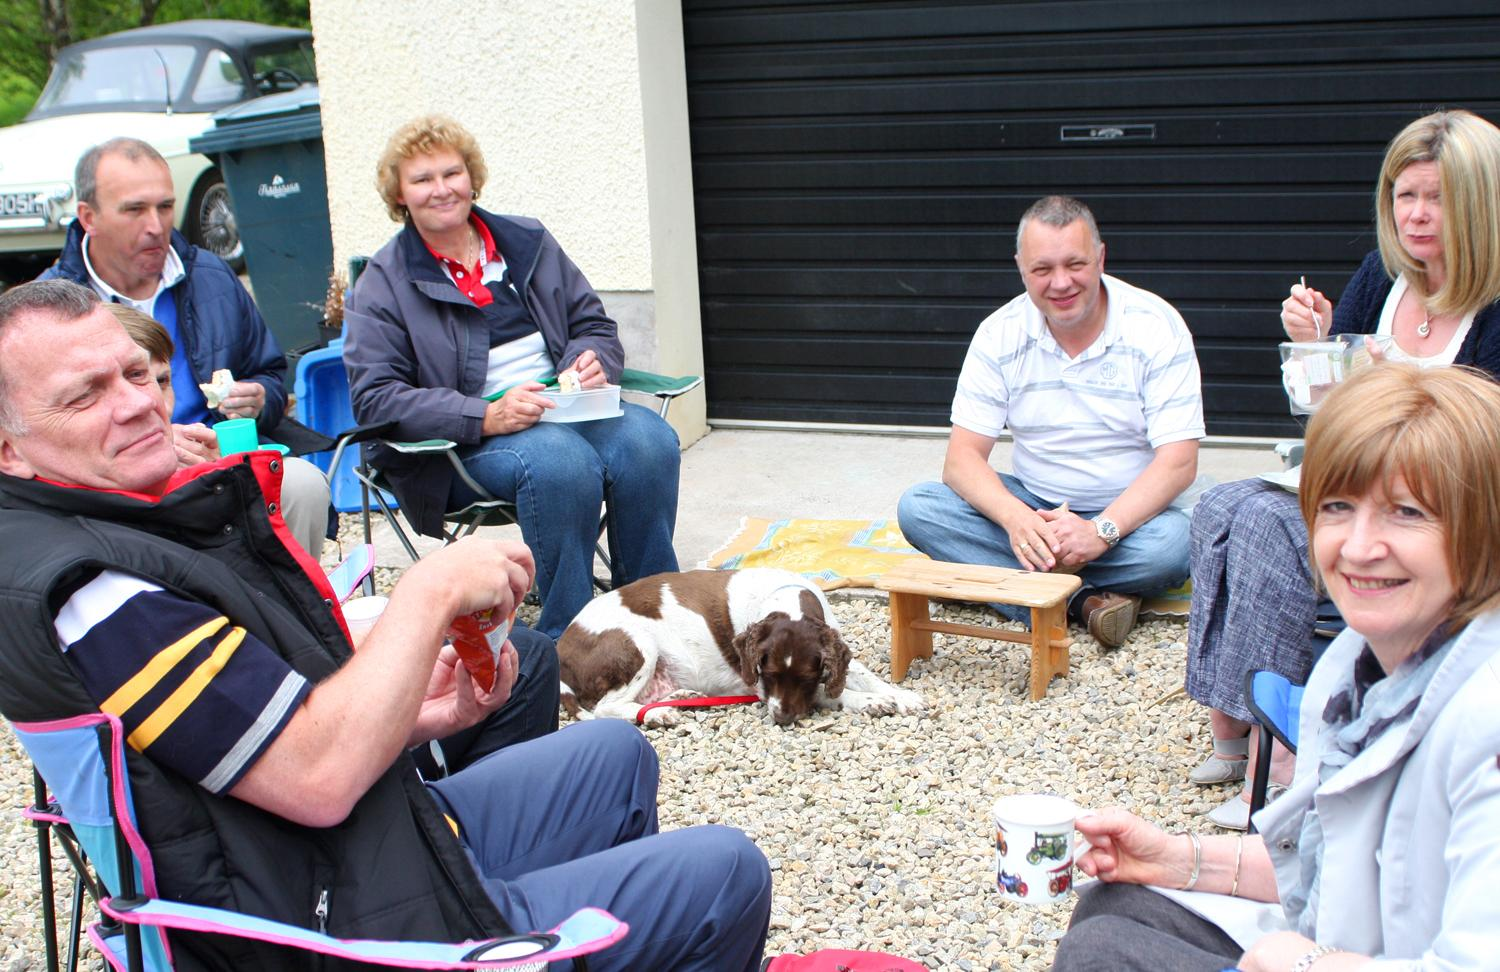 Members enjoying the chat during the Omagh Run pf 2